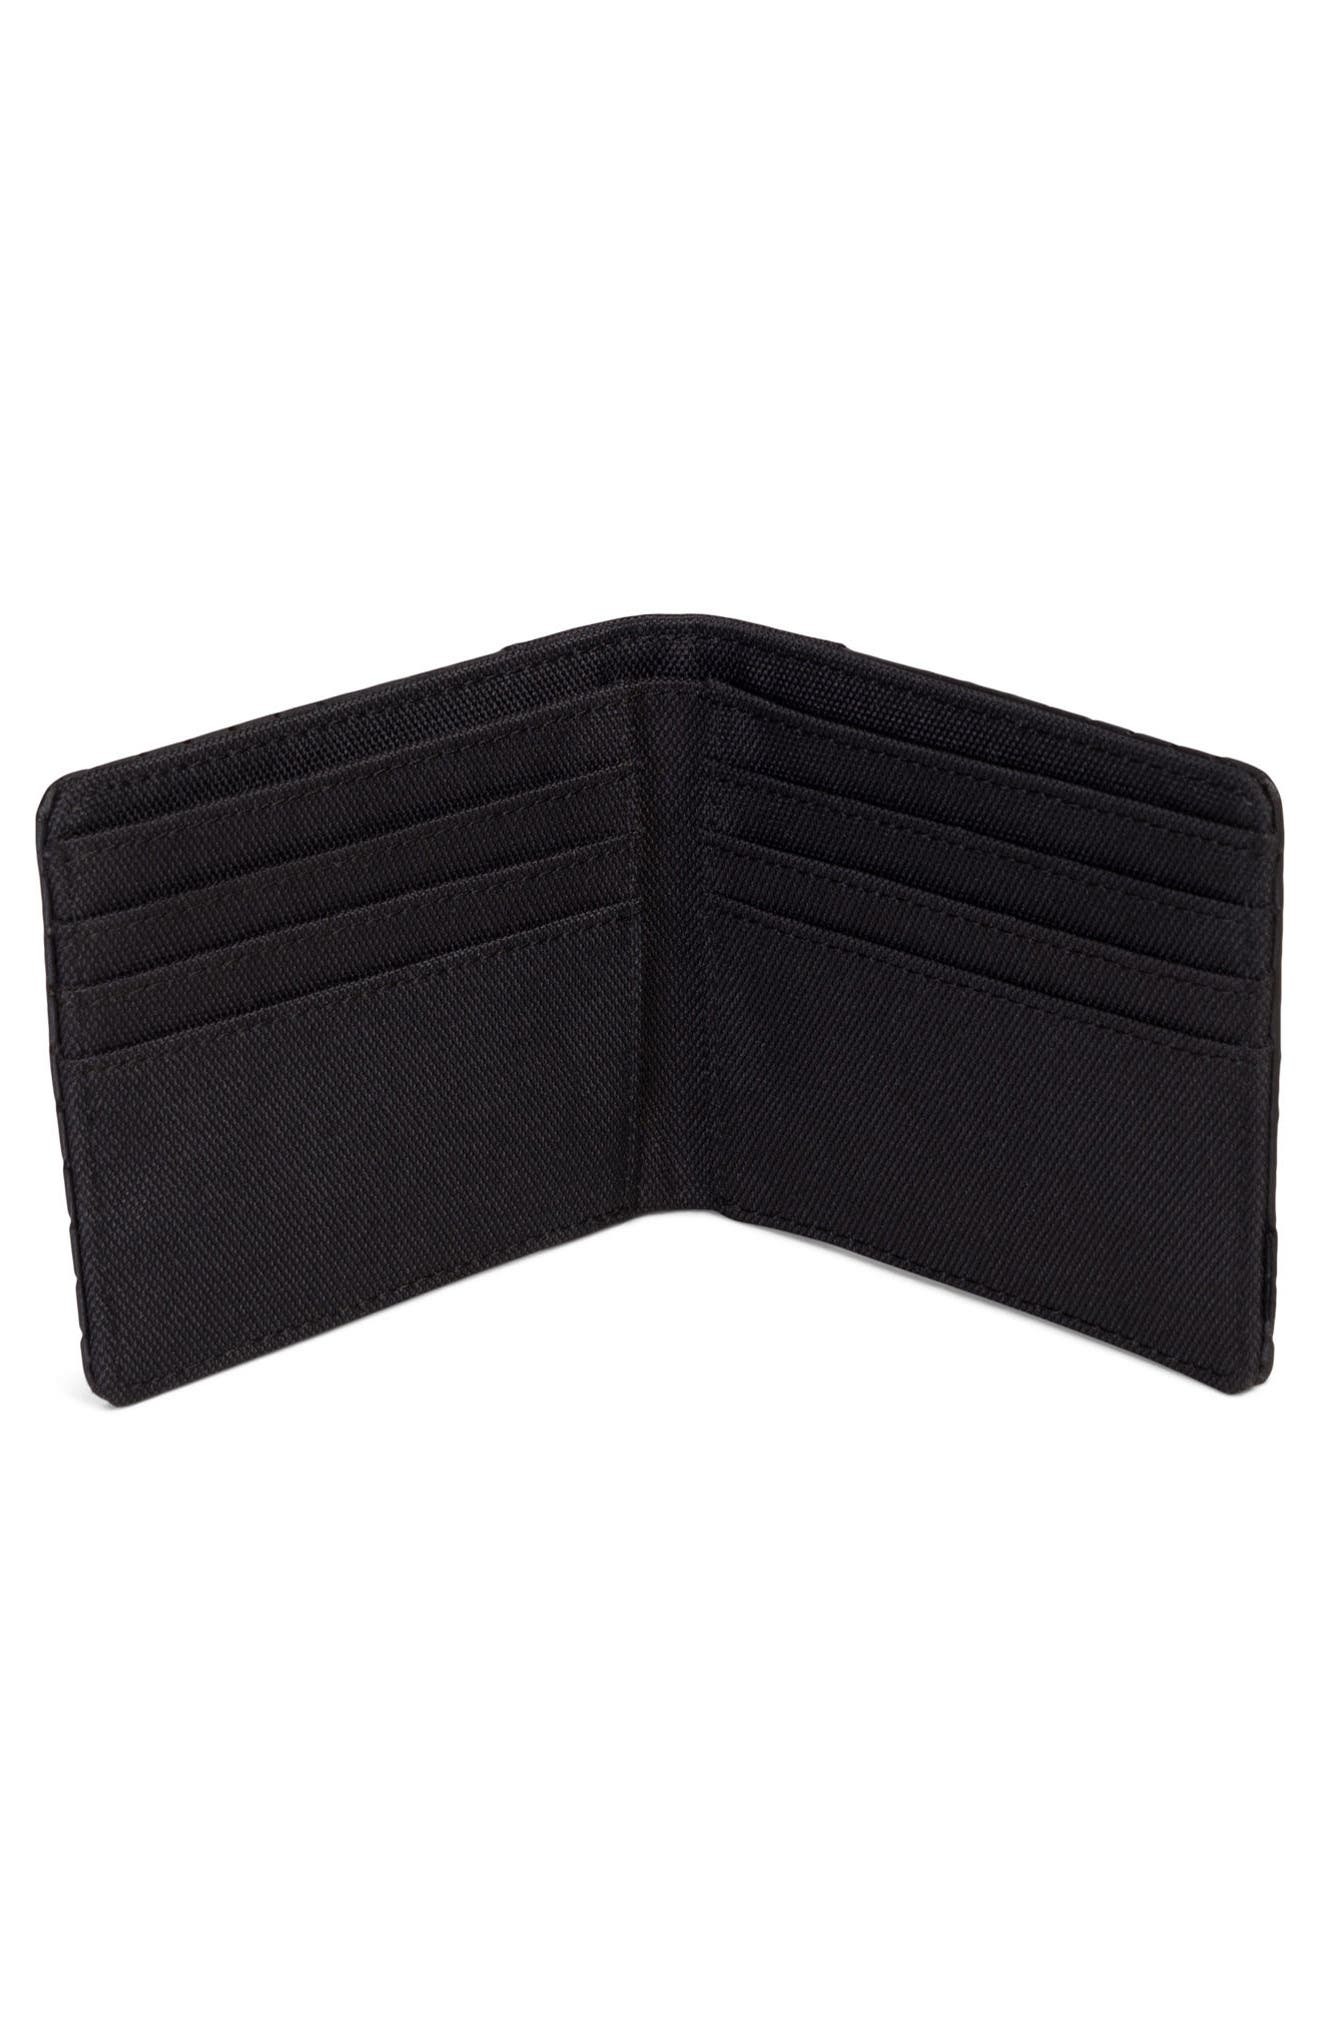 Edward Aspect Perforated Wallet,                             Alternate thumbnail 3, color,                             001